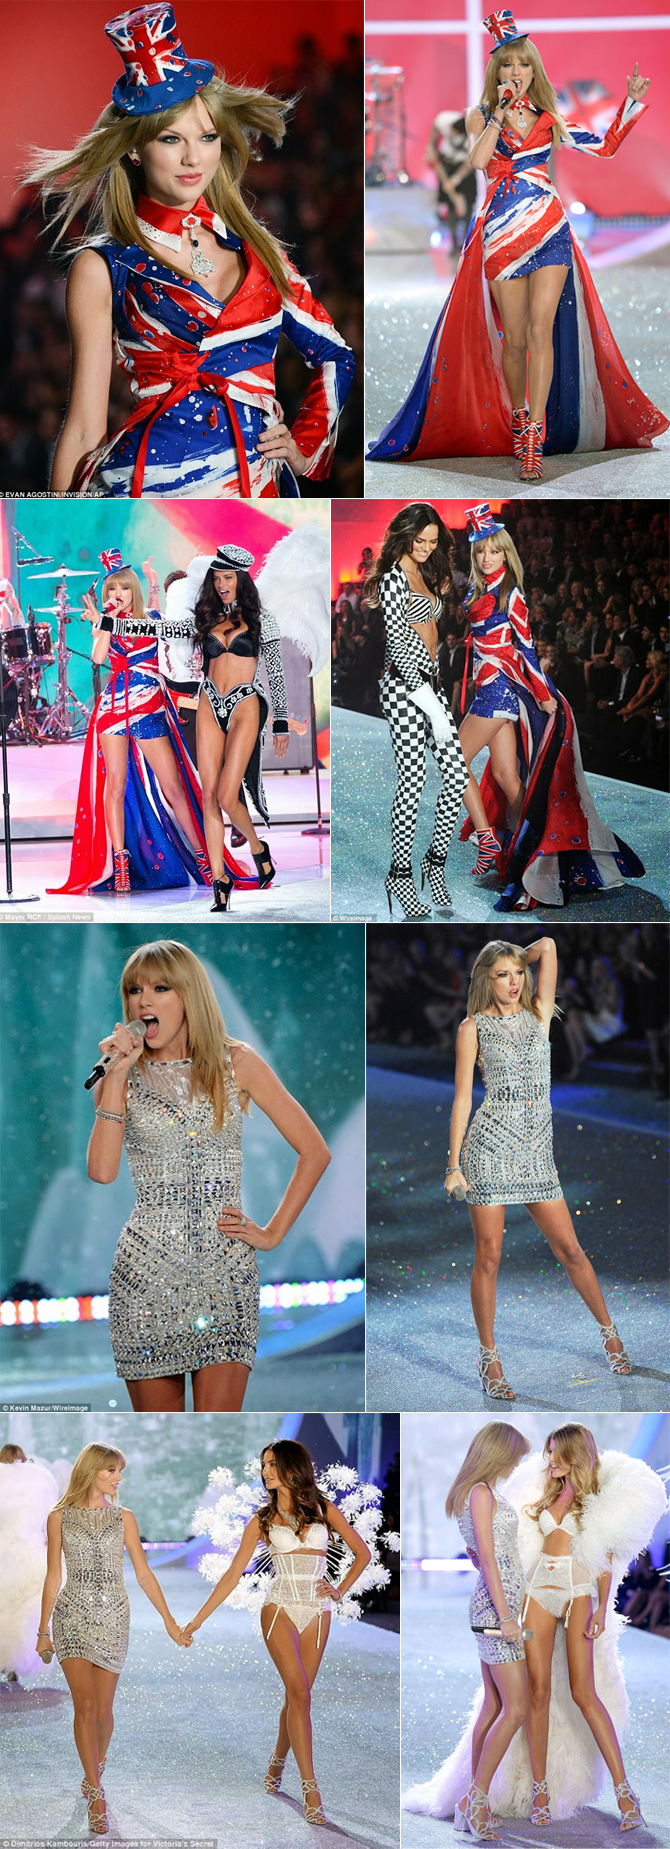 Taylor Swift em desfile da Victoria's Secret copy